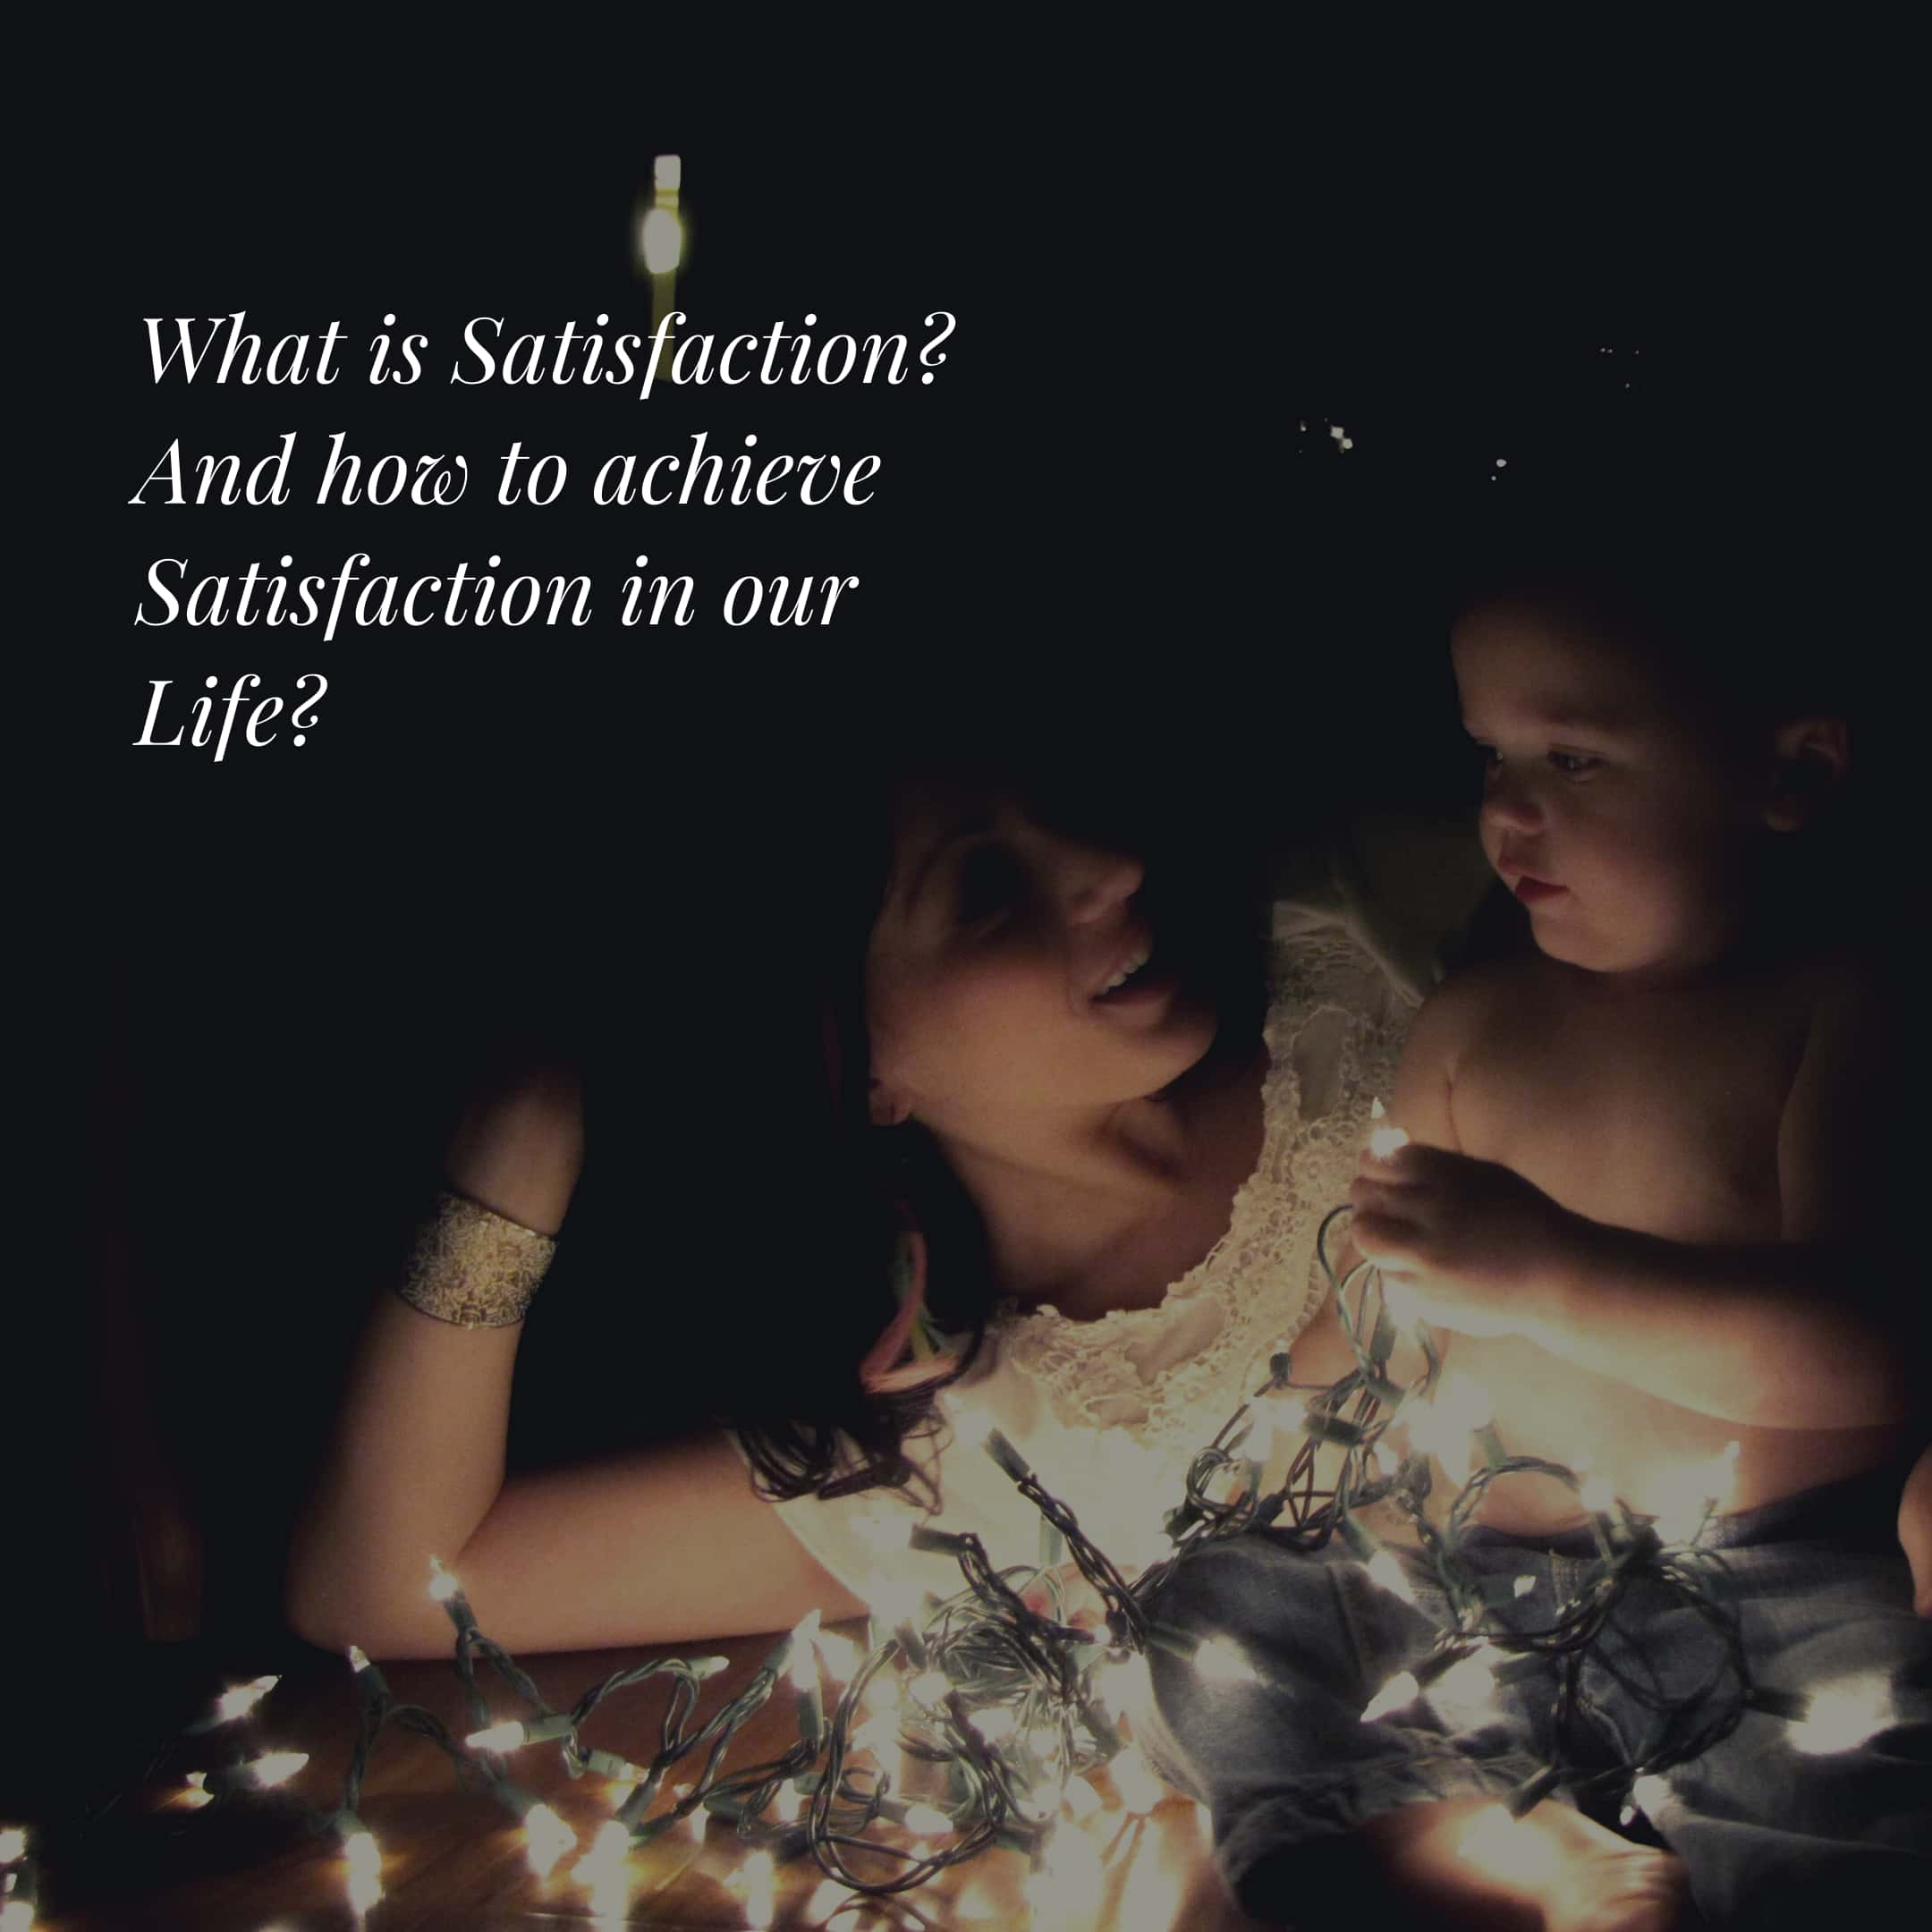 what-is-satisfaction-and-how-to-achieve-satisfaction-in-our-life